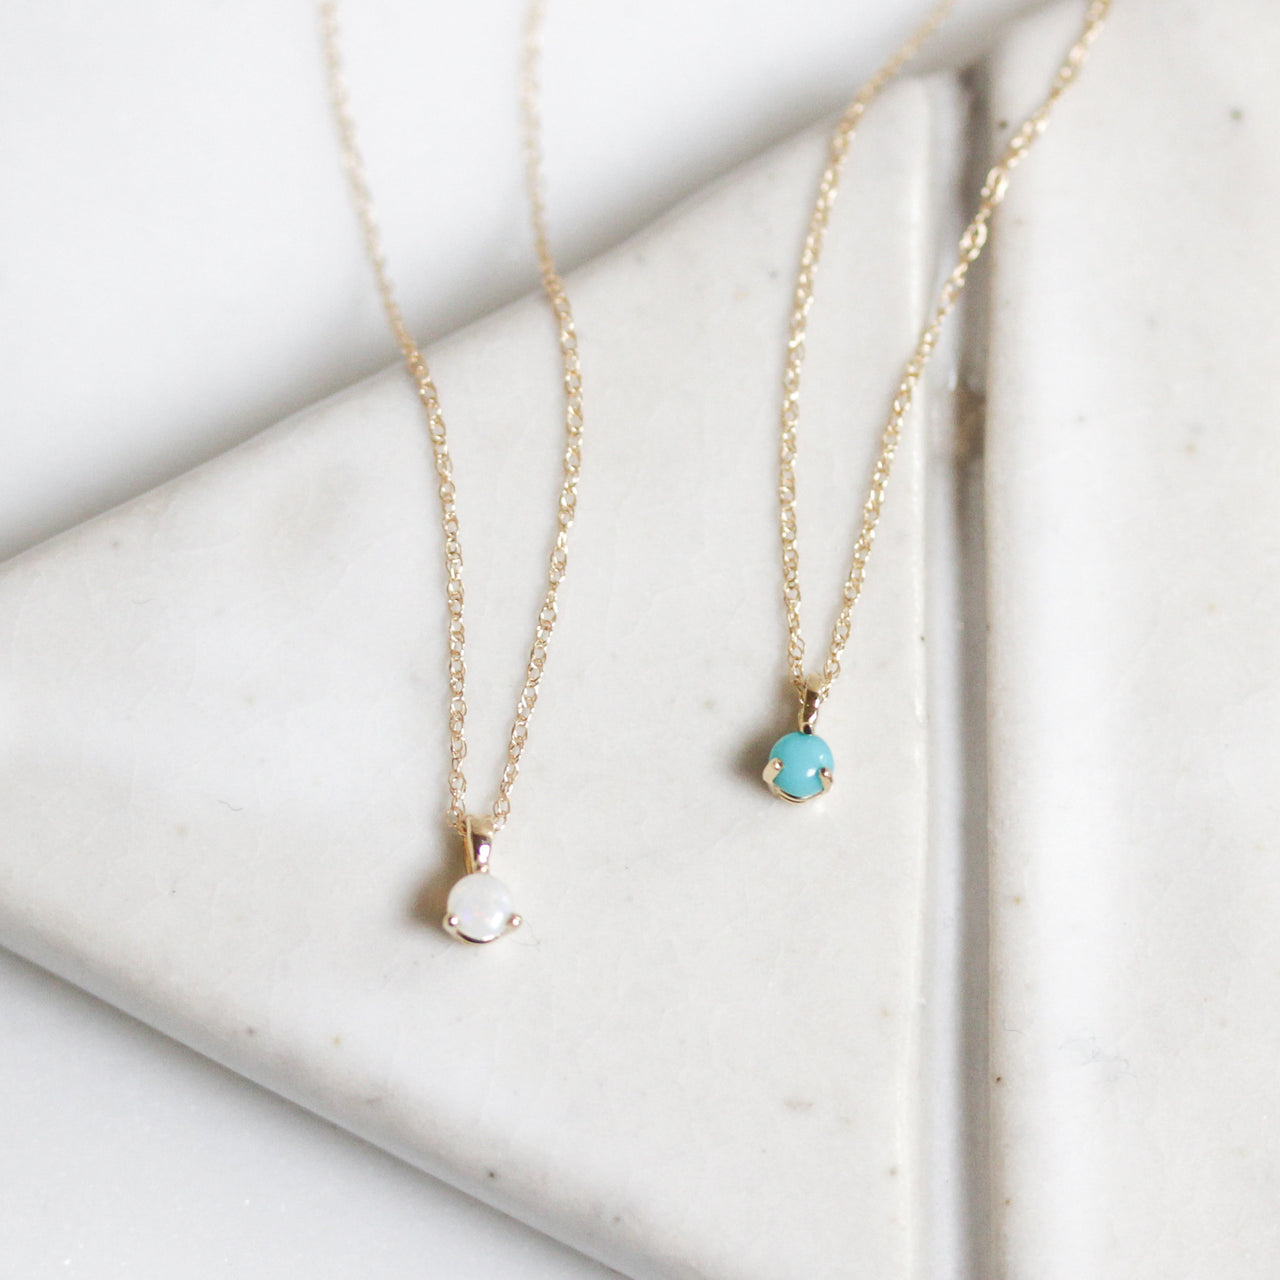 Solid Gold Gemstone Necklace